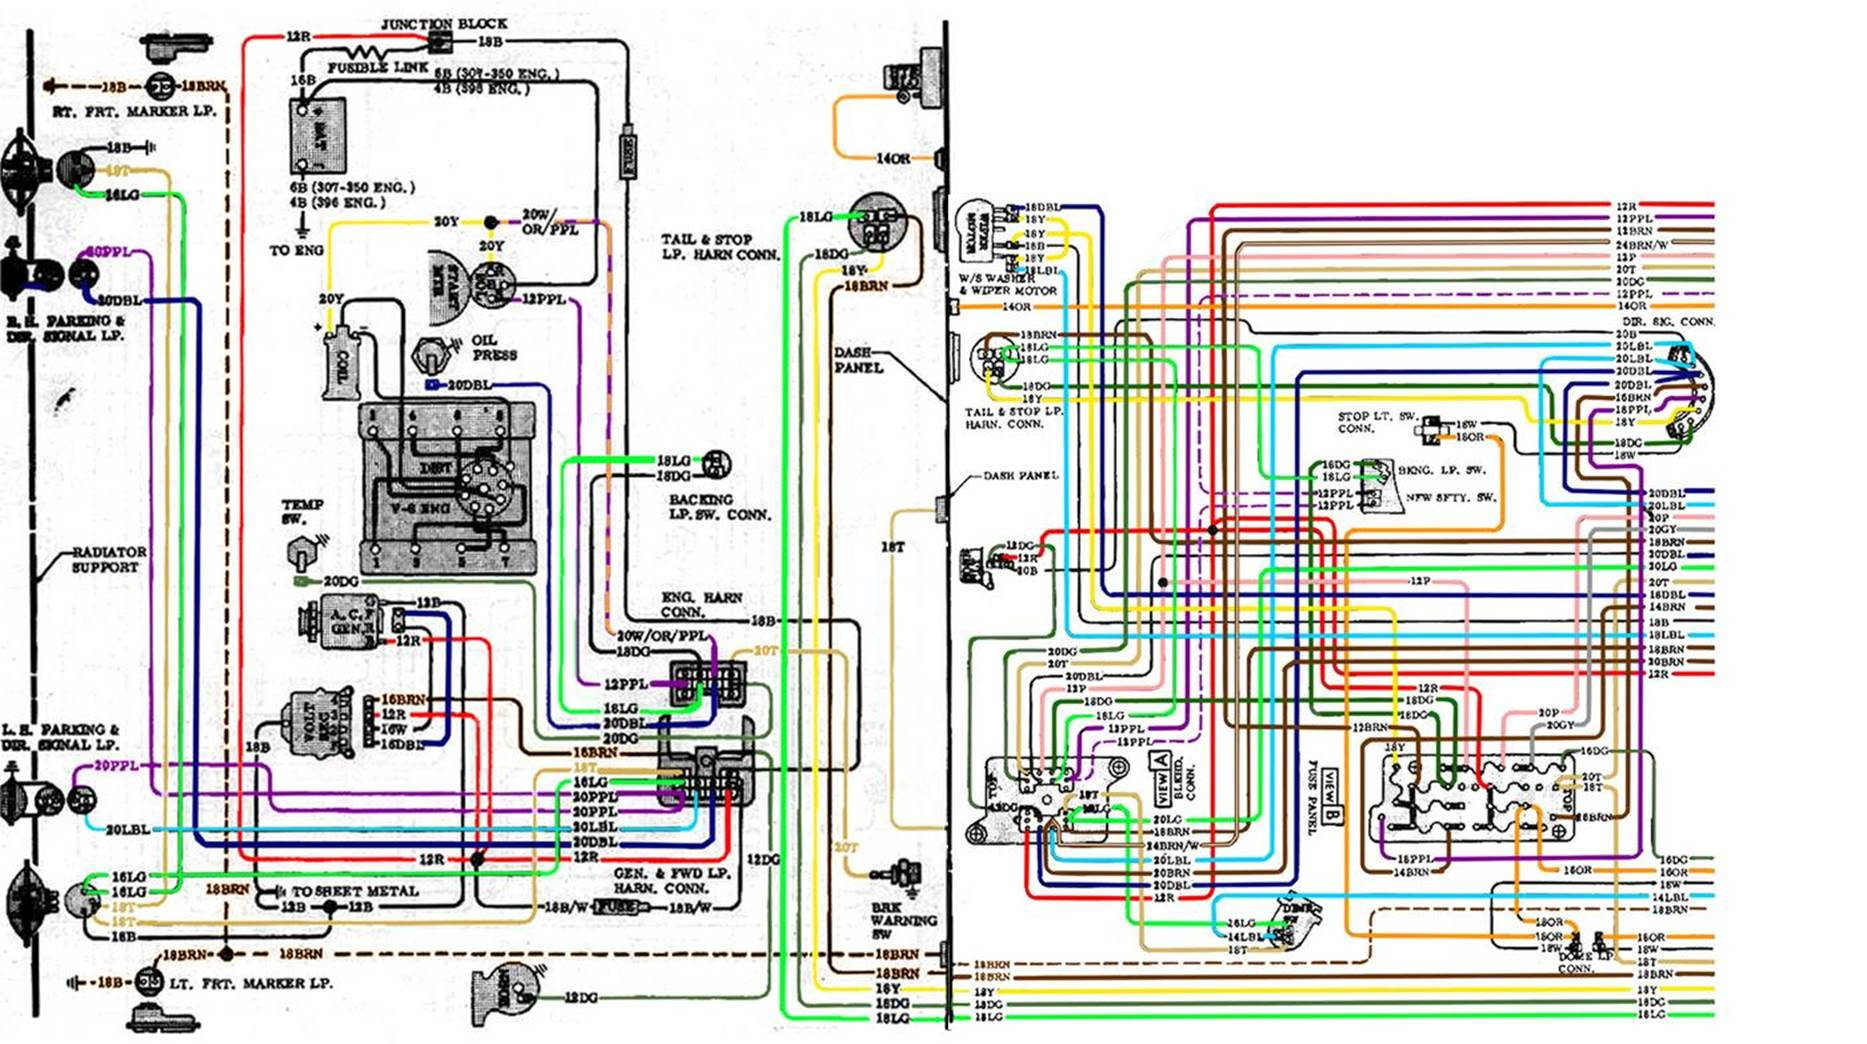 67 Chevelle Dash Fuse Box Just Another Wiring Data 99 F150 Diagram For 1967 Electronic Diagrams